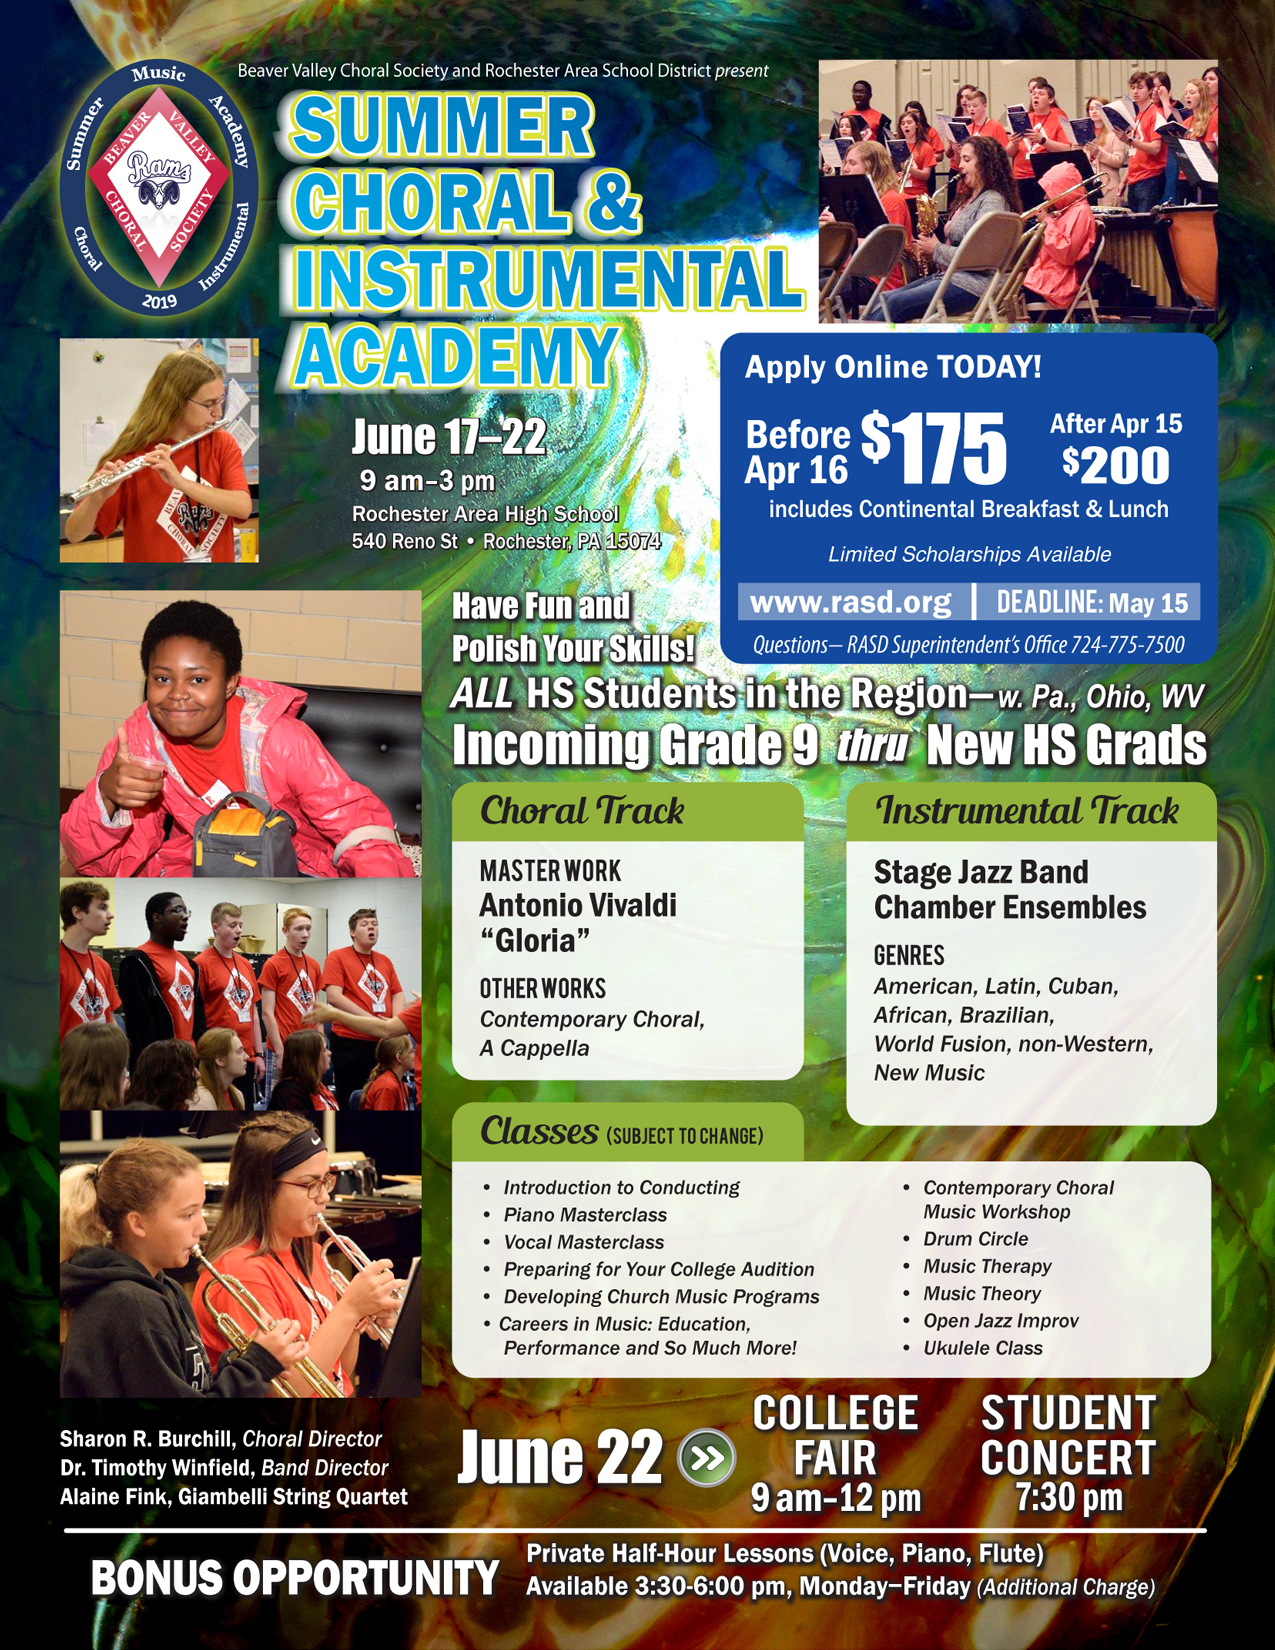 2019 Summer Choral and Instrumental Academy / 2019 Summer Choral and